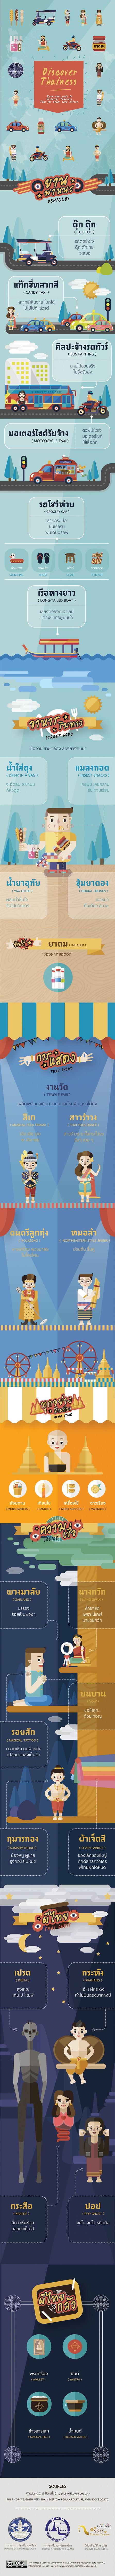 Discover Thainess | Infofed